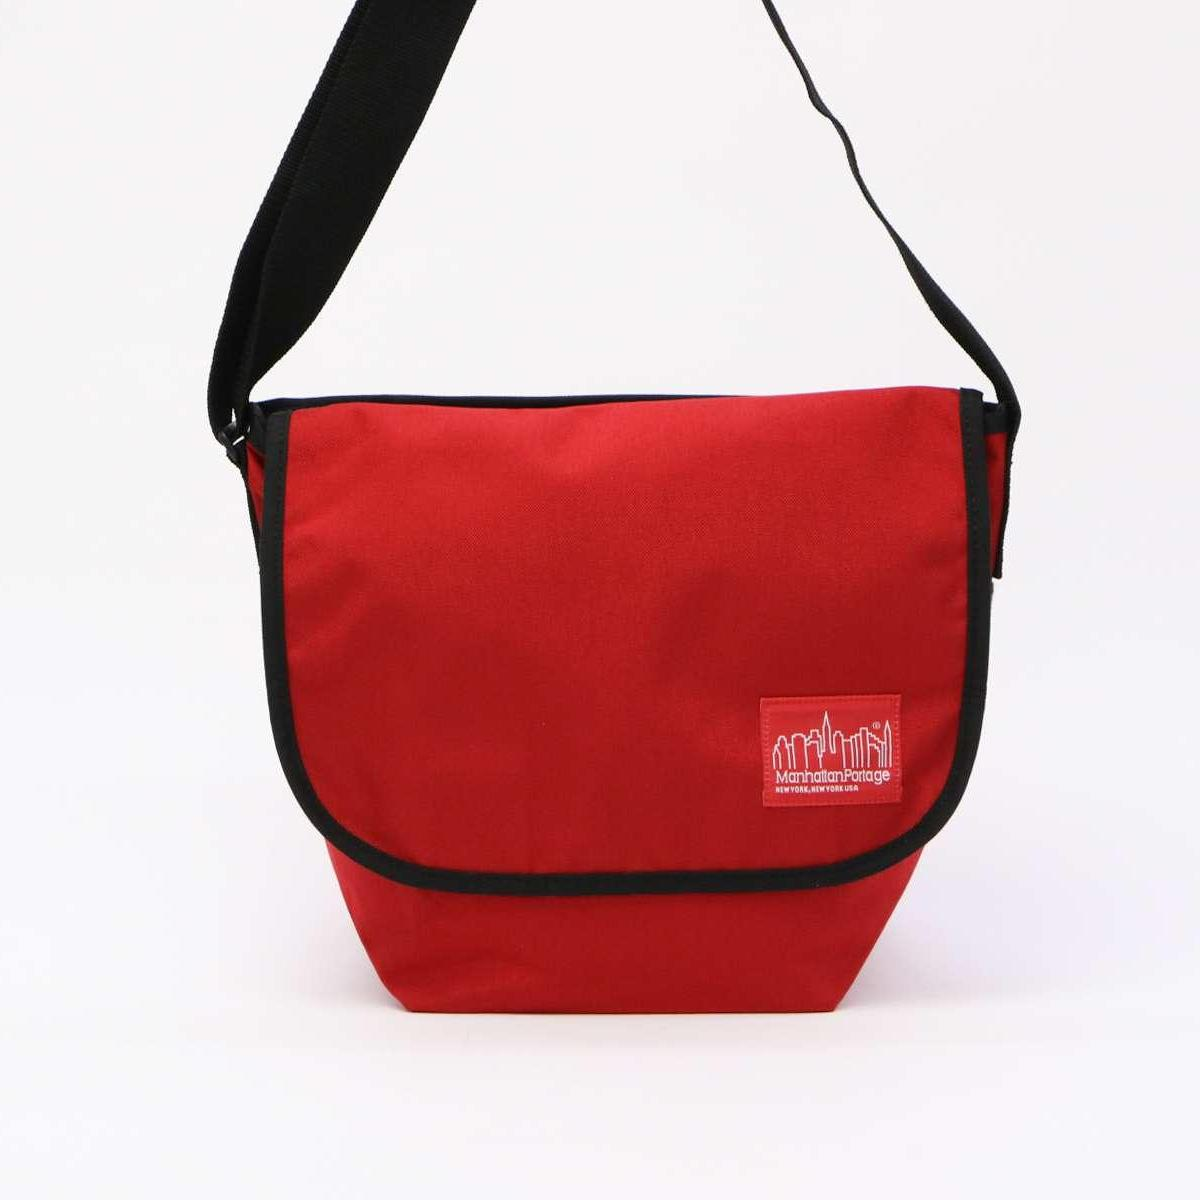 [Manhattan Portage] Unisex JR SM Messenger Bag B5 SIZE Square type Codura Water Repellant